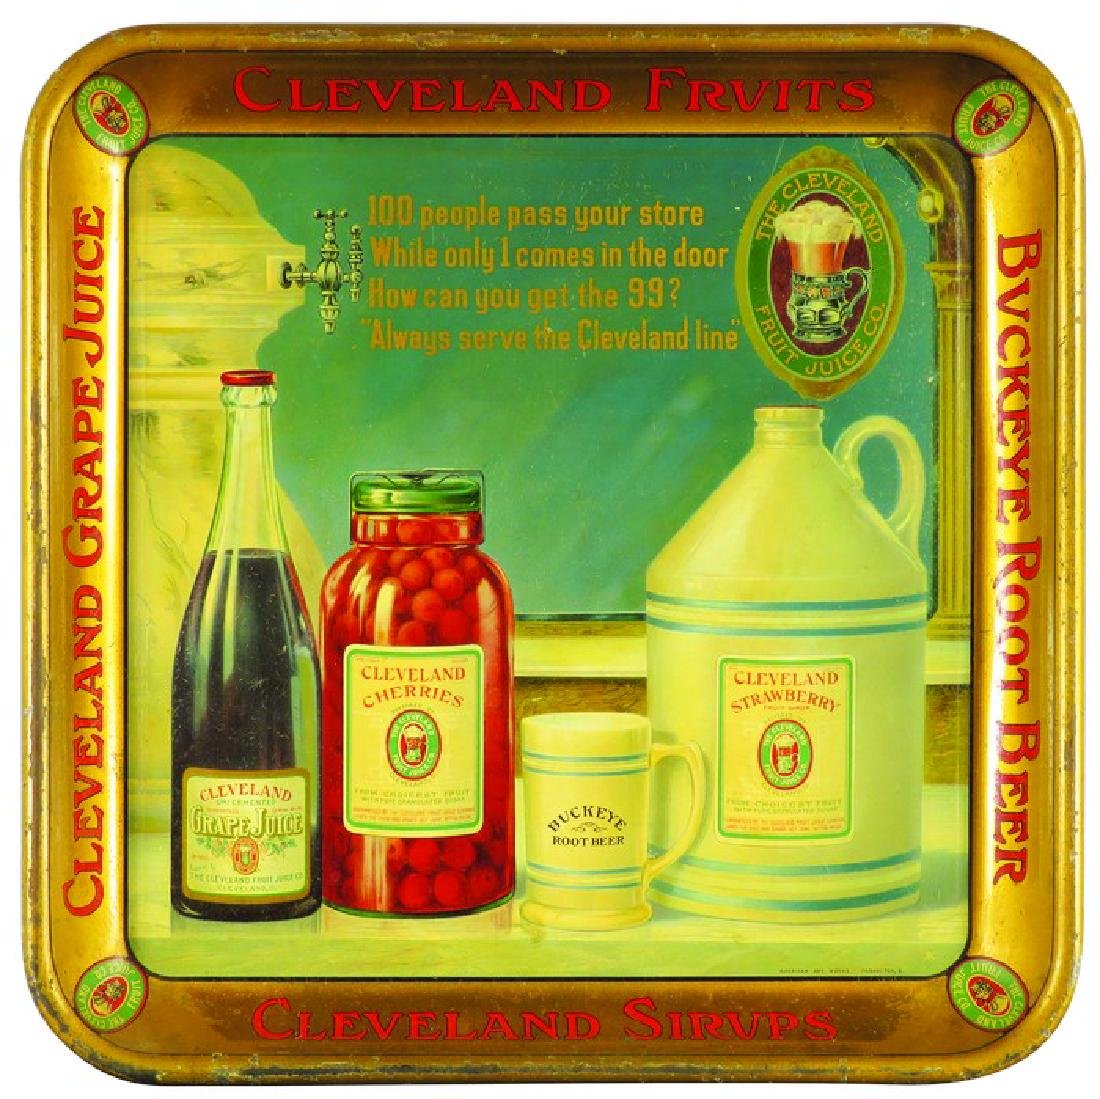 The Cleveland Fruits and Juice Co. Tin Serving Tray